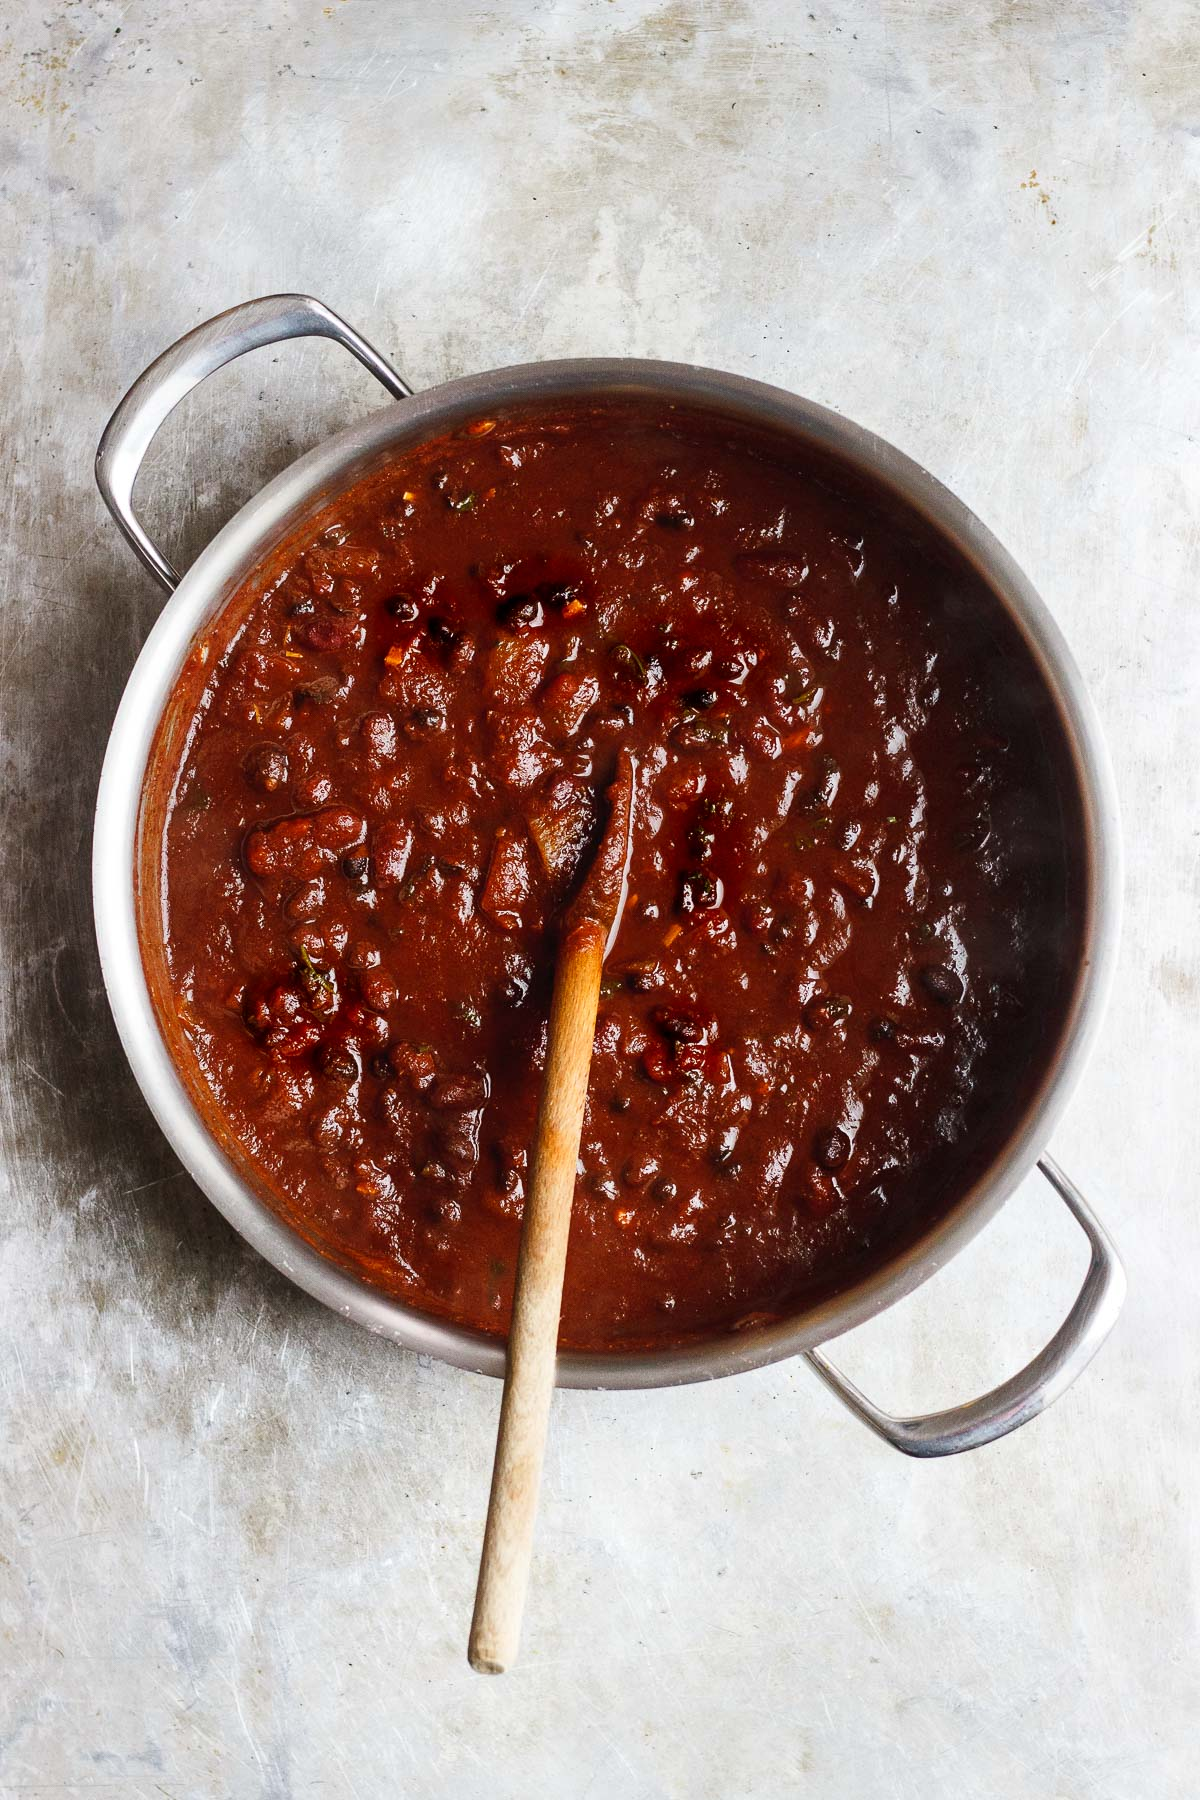 TWENTY MINUTE CHILI WITH BLACK AND KIDNEY BEANS